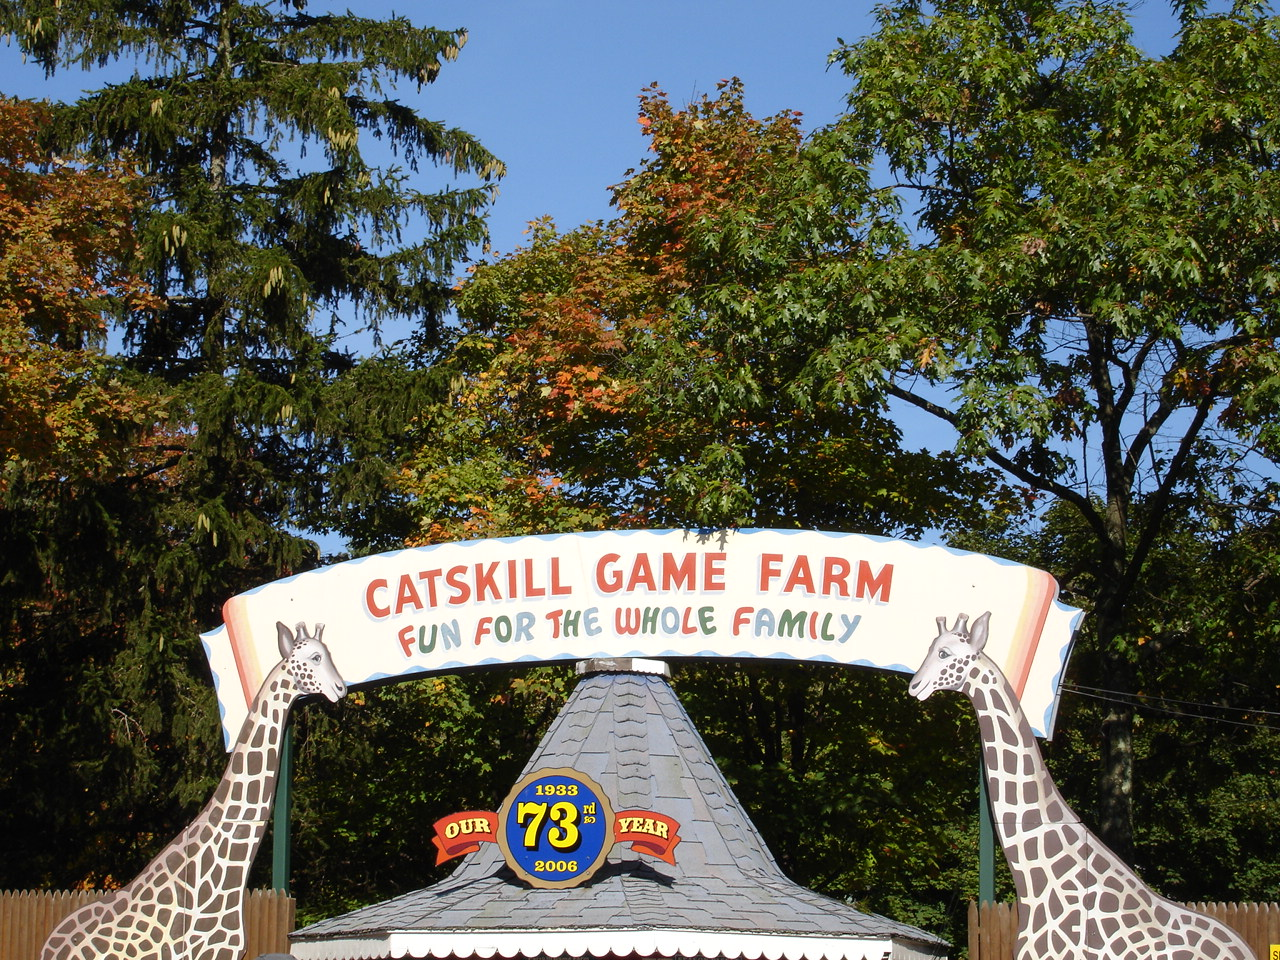 Catskill Game Farm - Wikipedia